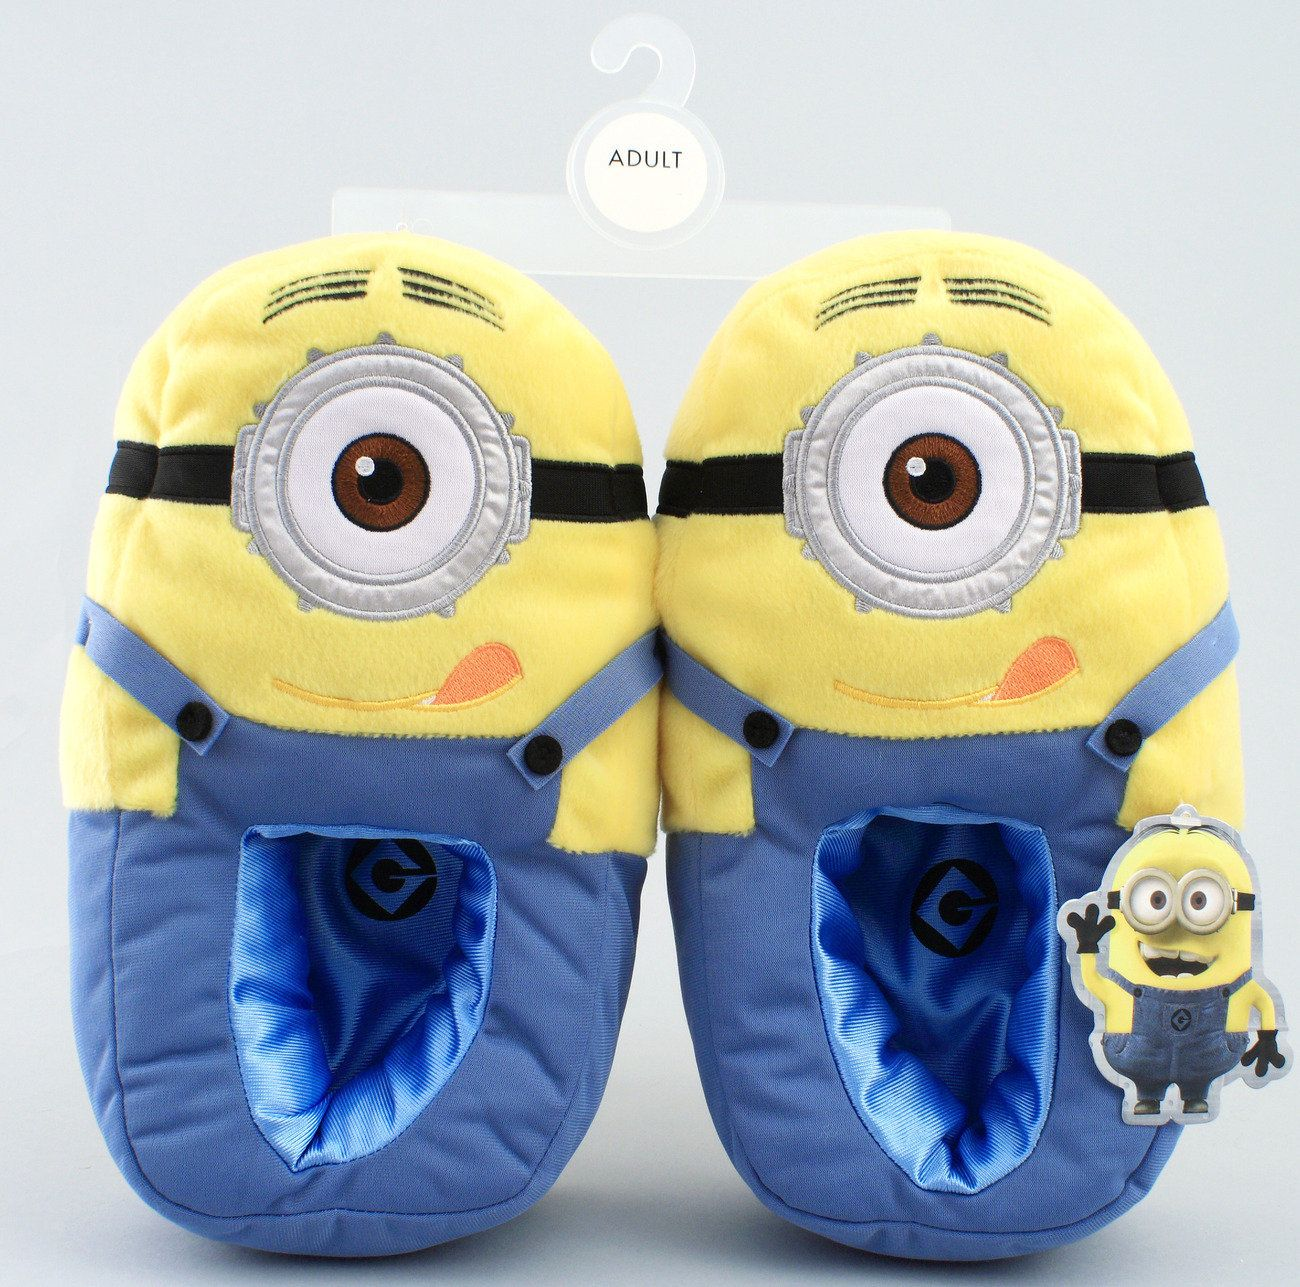 Despicable me minion plush bedroom slippers minion mayhem - Most comfortable bedroom slippers ...